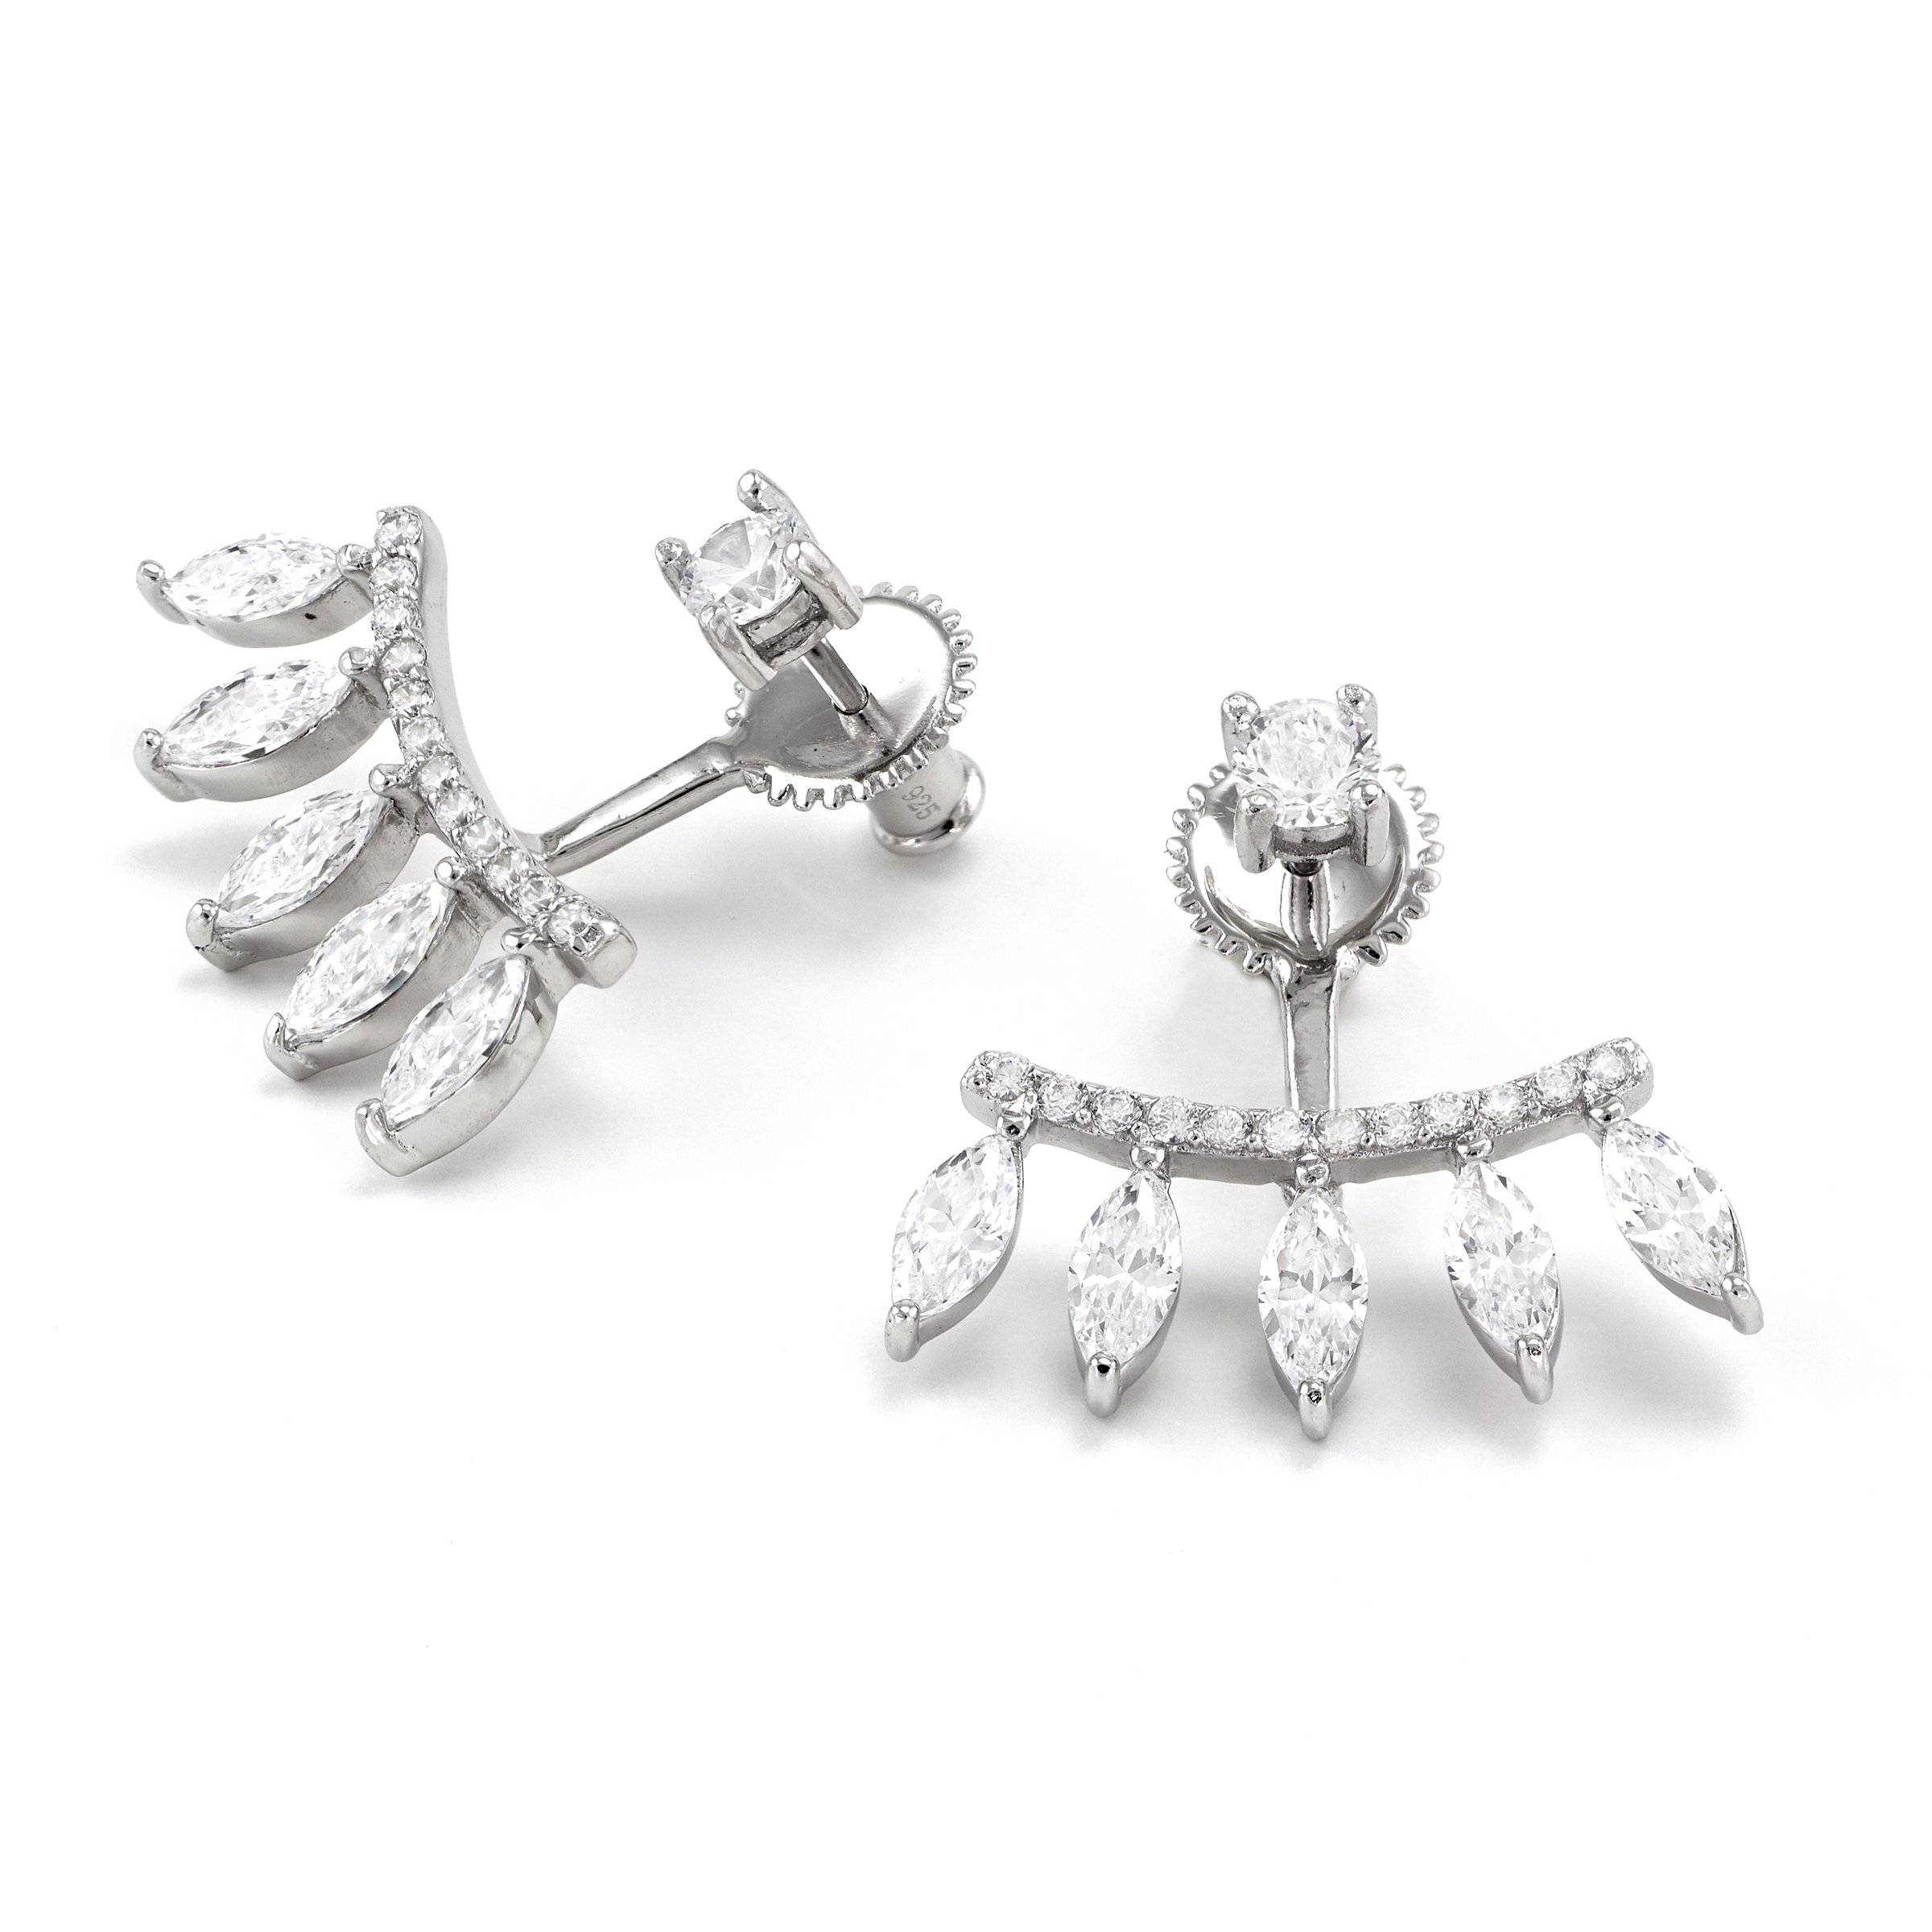 Platinum Plated 925 Sterling Silver Round Cubic Zirconia Curved Bar 5 Leaf Baguette Earring Jackets